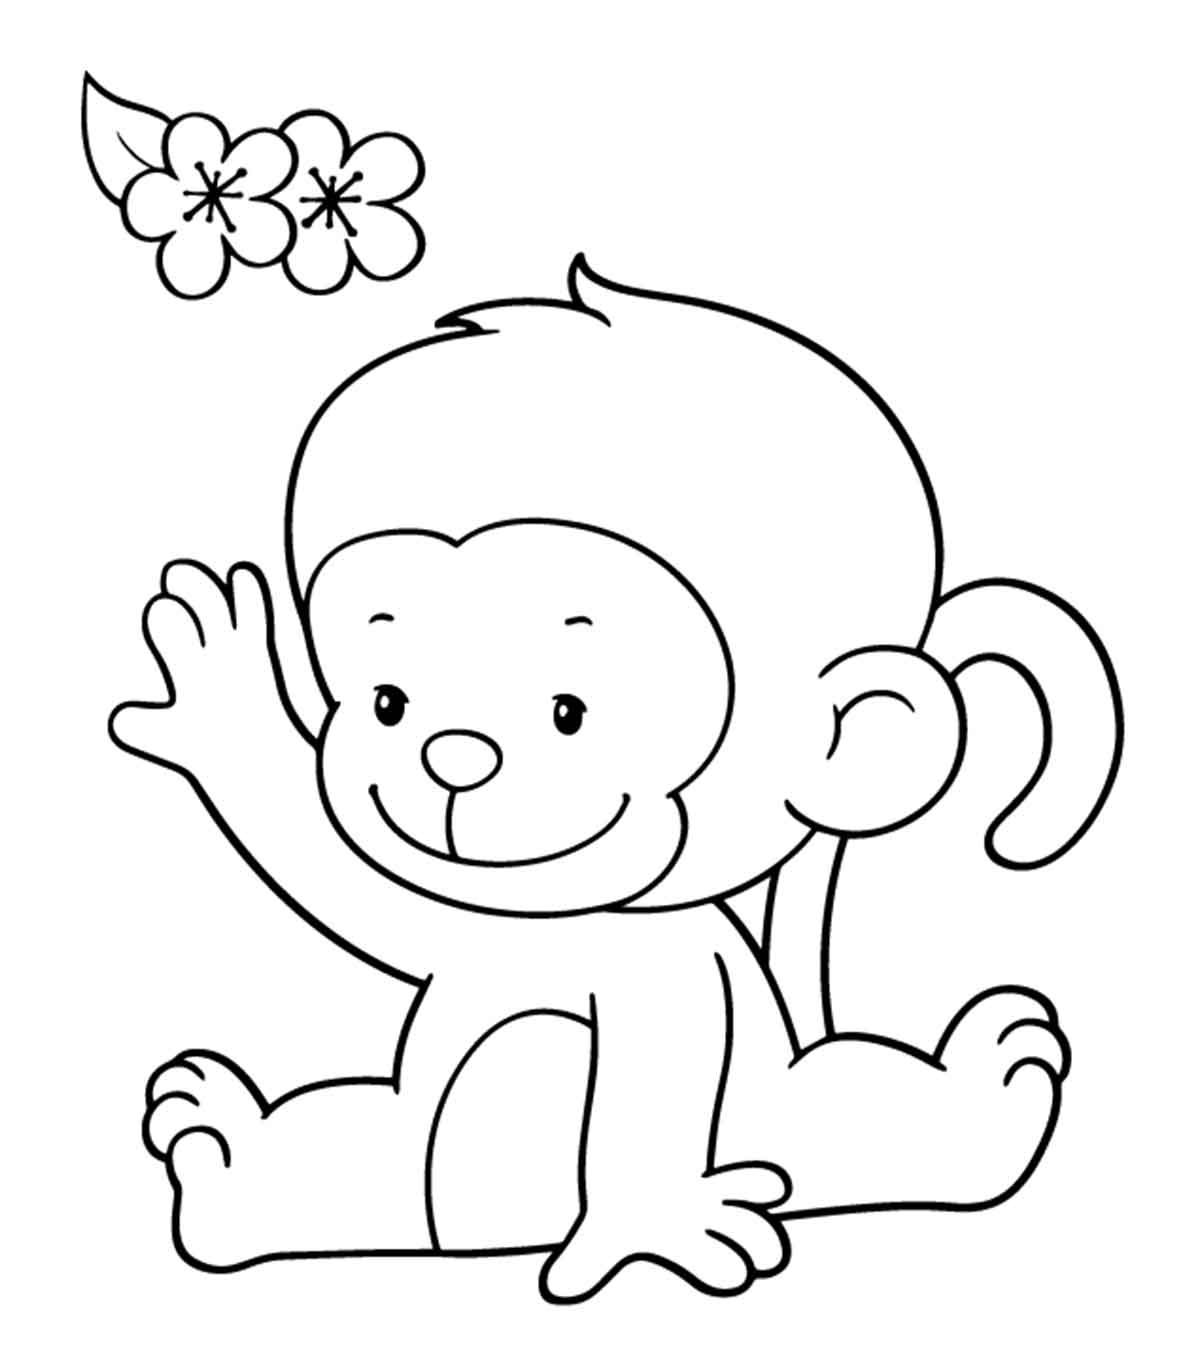 35+ Ideas For Cute Simple Monkey Coloring Pages - Twin ...